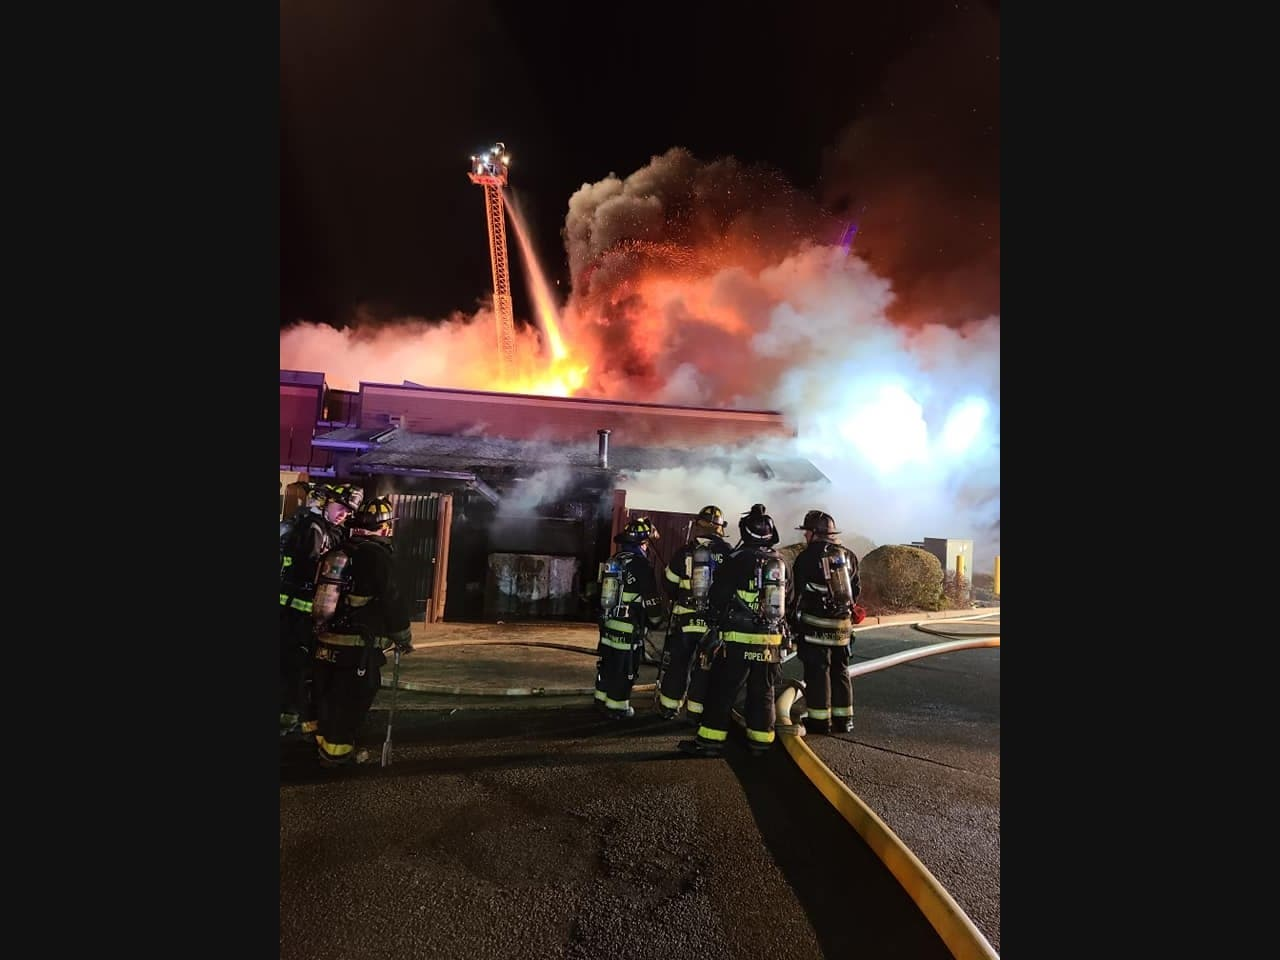 Fire That Gutted North Jersey Eatery 'Not Suspicious:' Officials